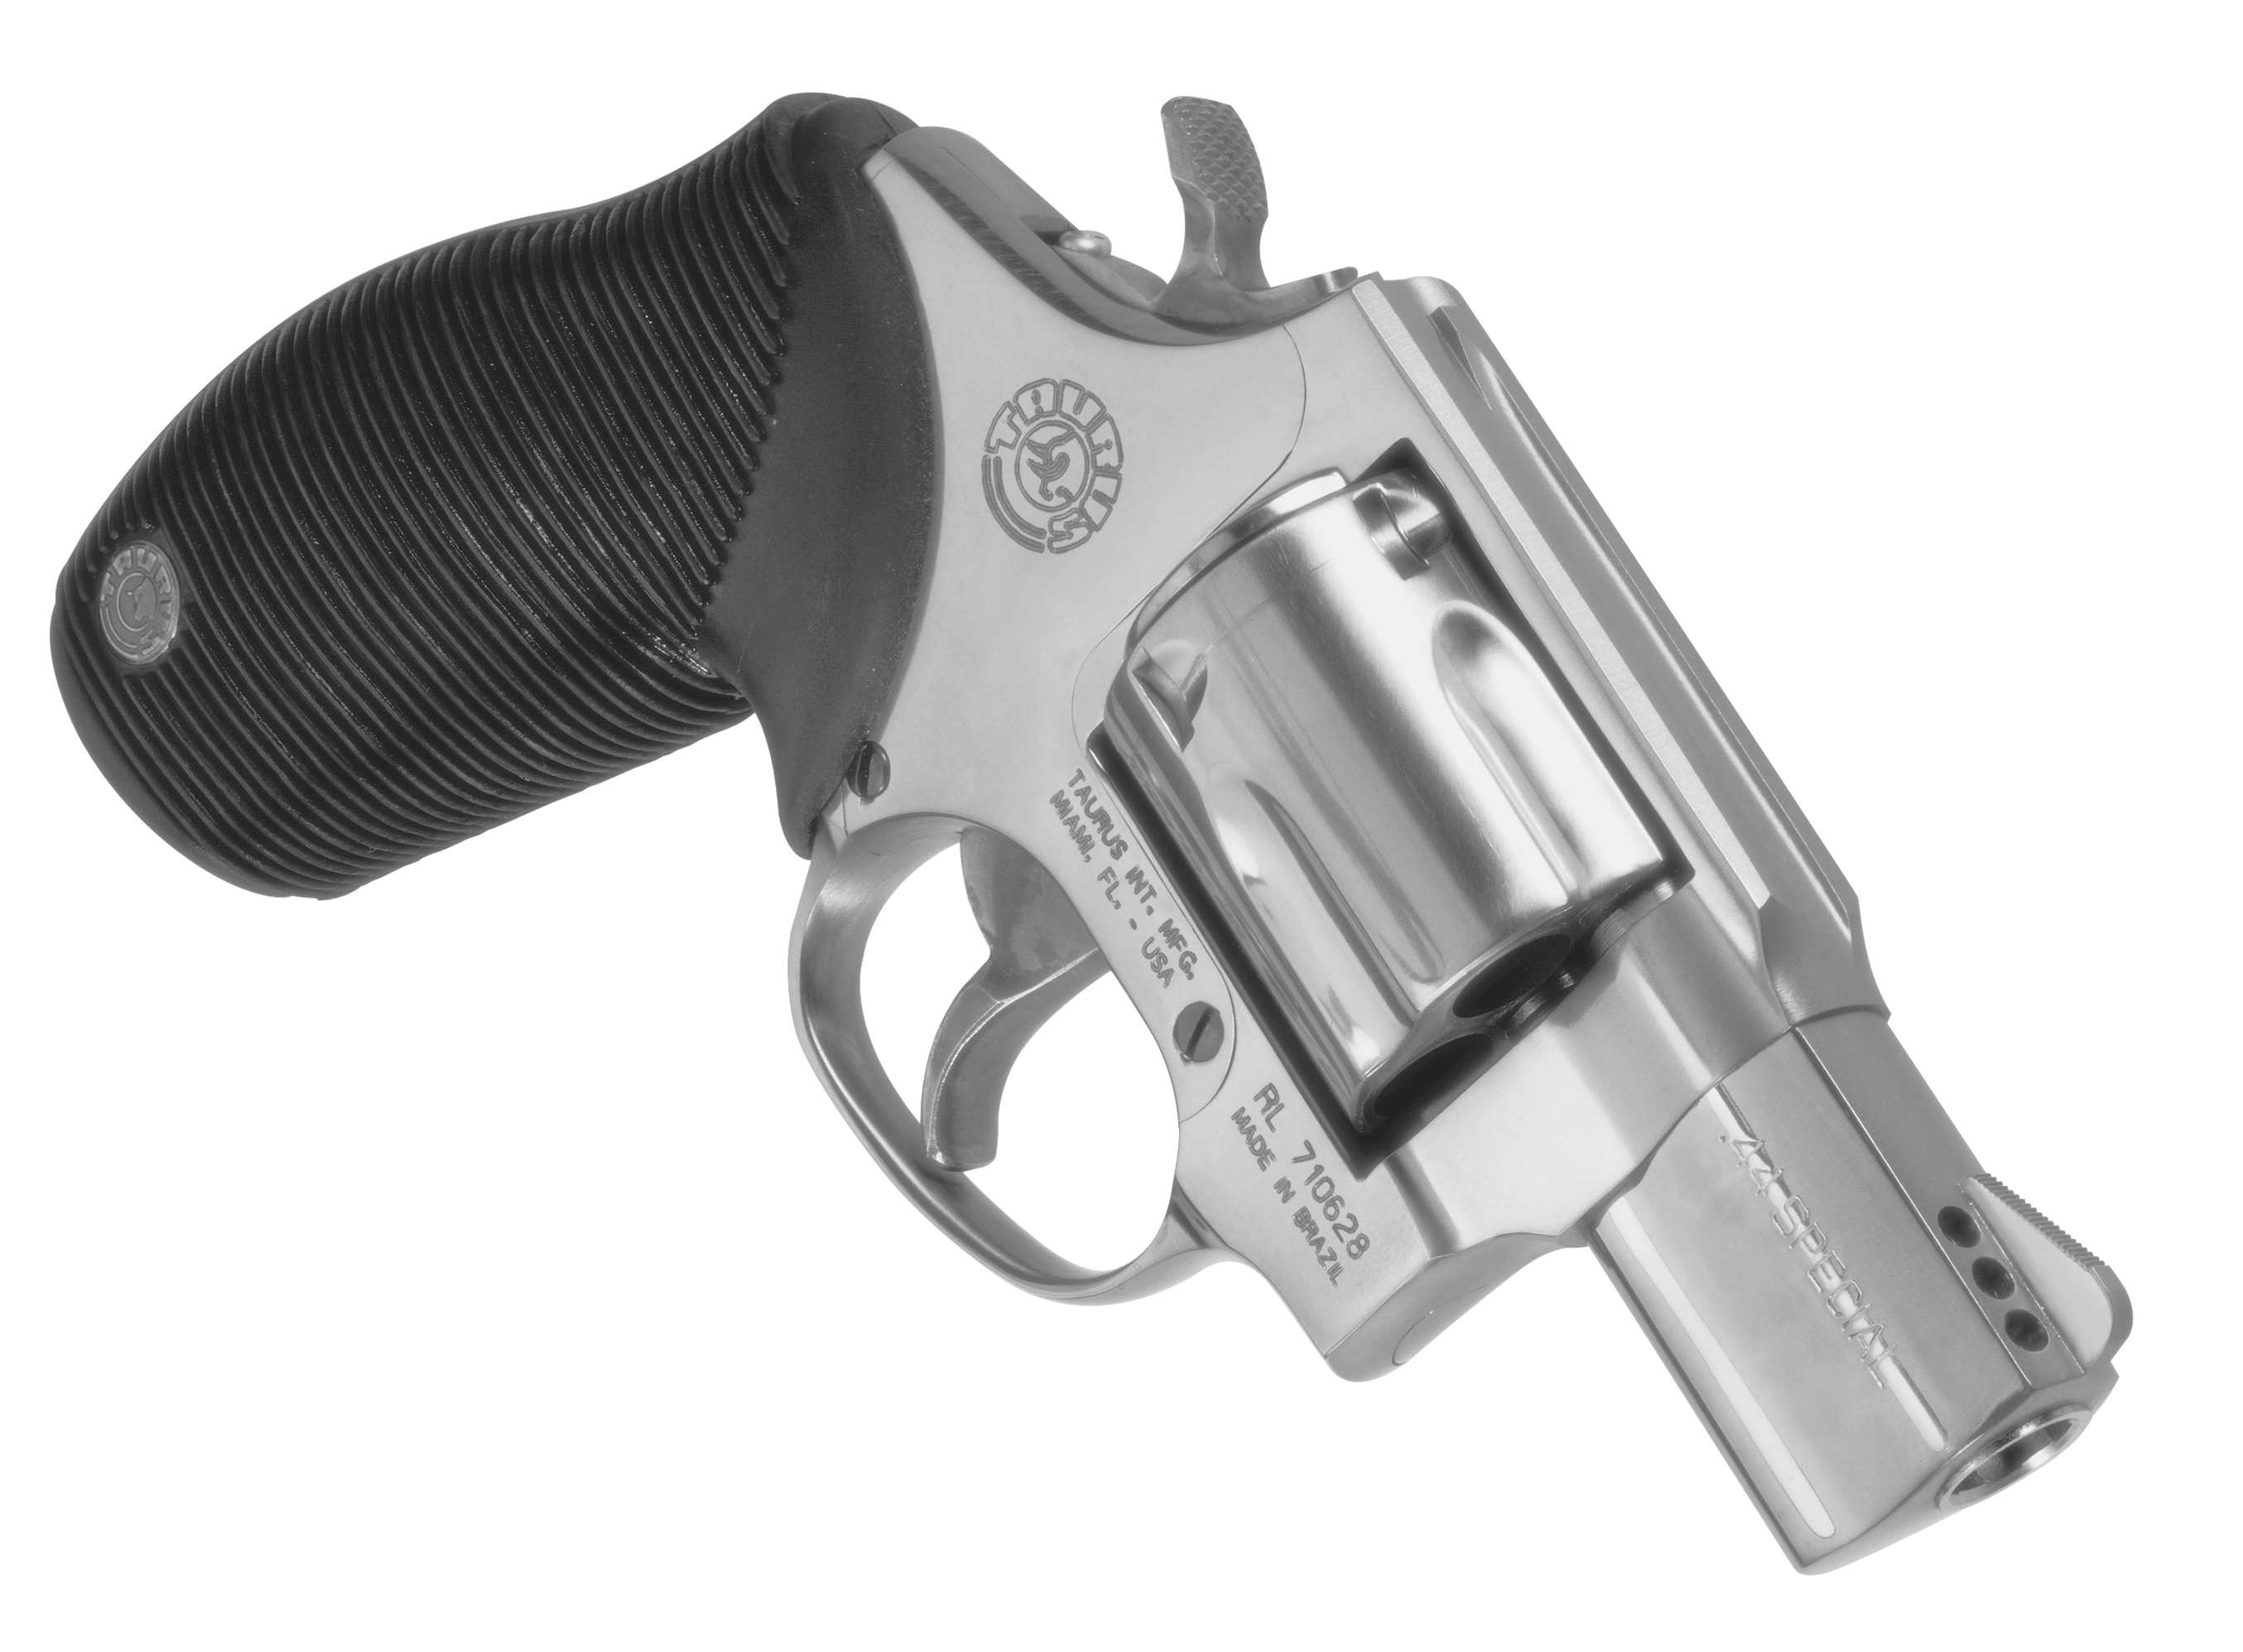 TAURUS INTERNATIONAL MFG  CO  TITANIUM SERIES Models :: Gun Values